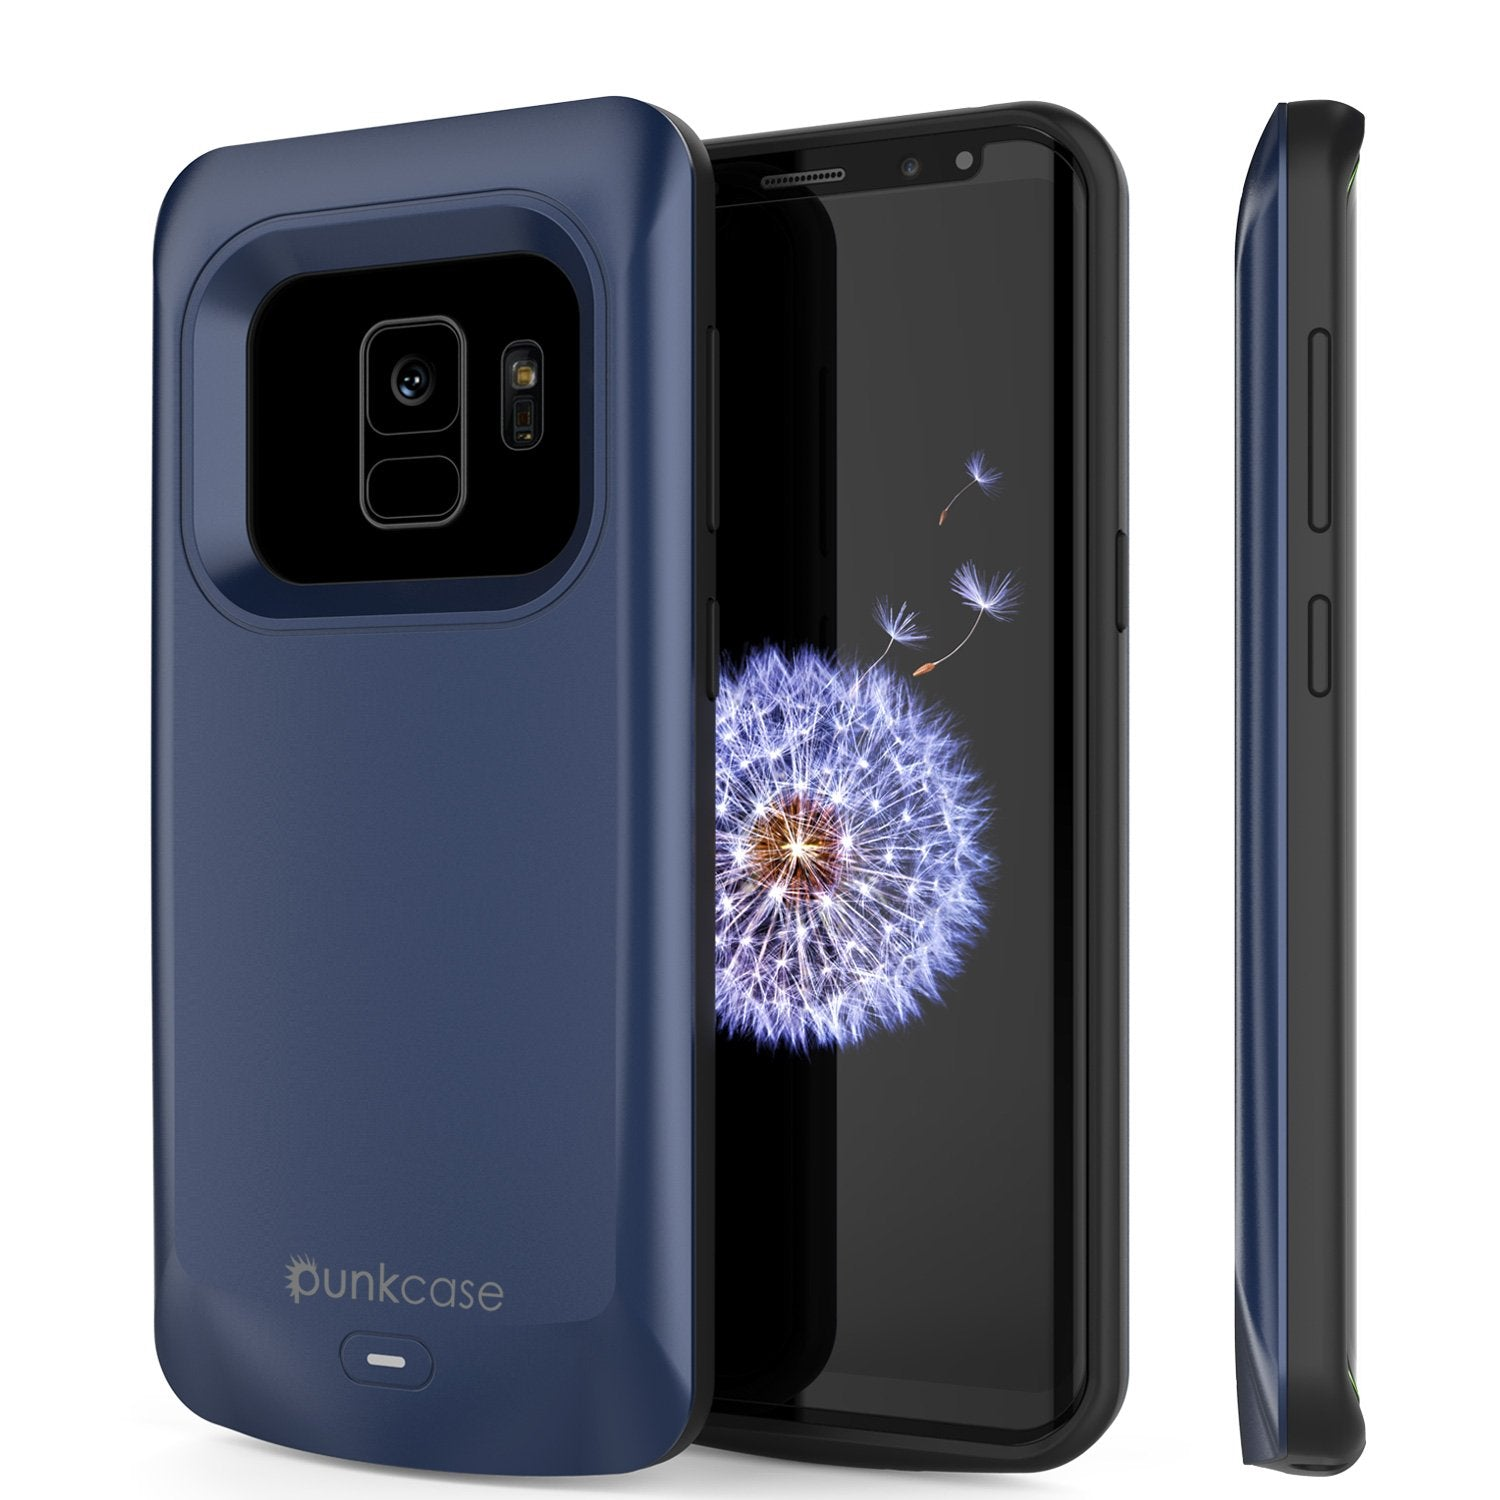 Galaxy S9 Battery Case, PunkJuice 5000mAH Fast Charging Power Bank W/ Screen Protector | Integrated USB Port | IntelSwitch | Slim, Secure and Reliable | Suitable for Samsung Galaxy S9 [Navy]